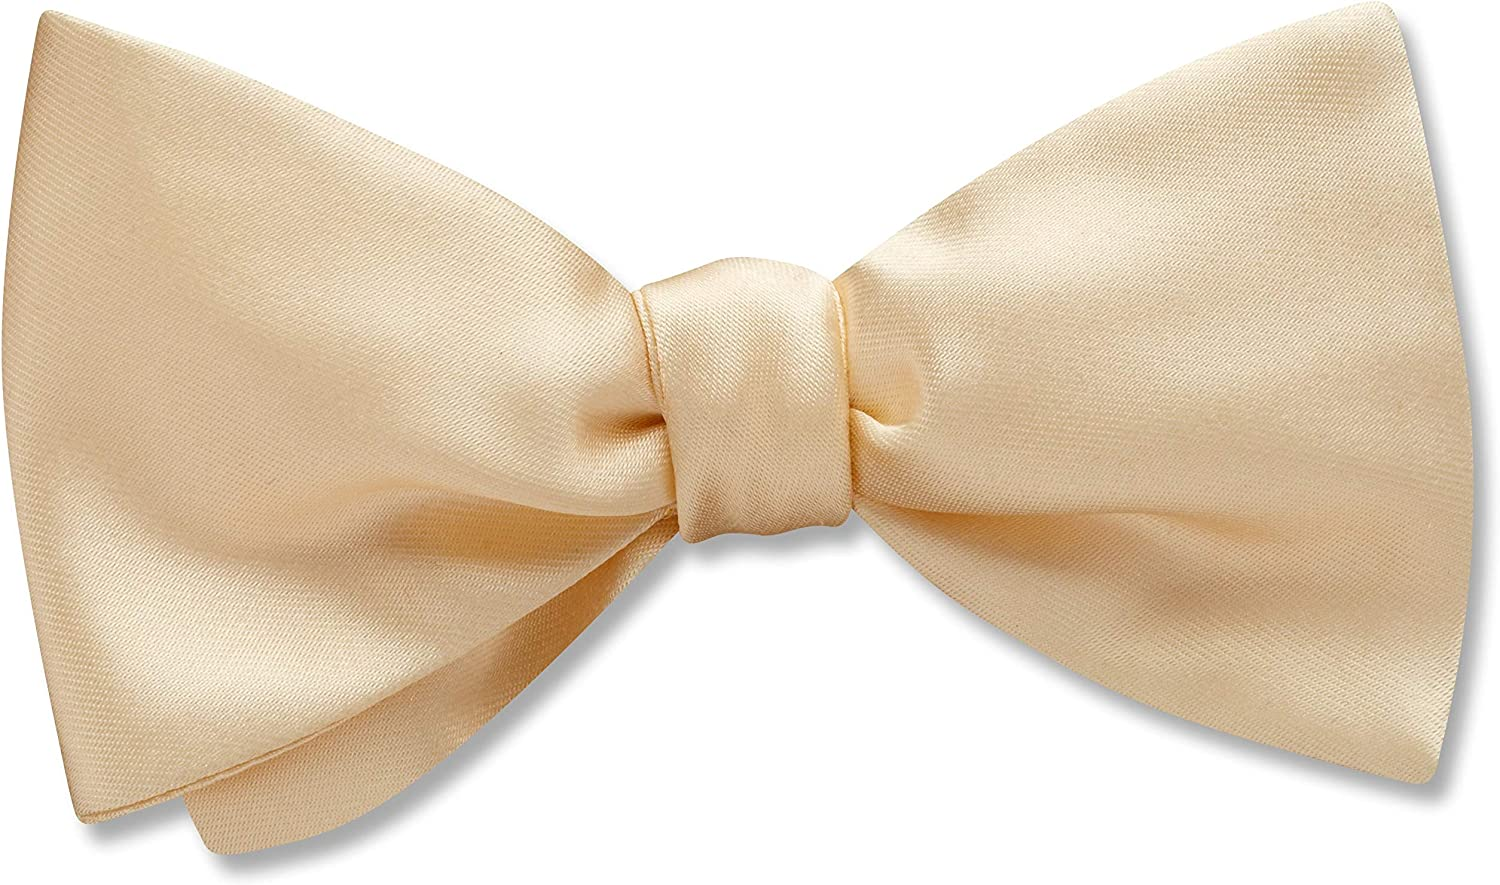 Somerville Ivory White Solid, Men's Bow Tie, Handmade in the USA